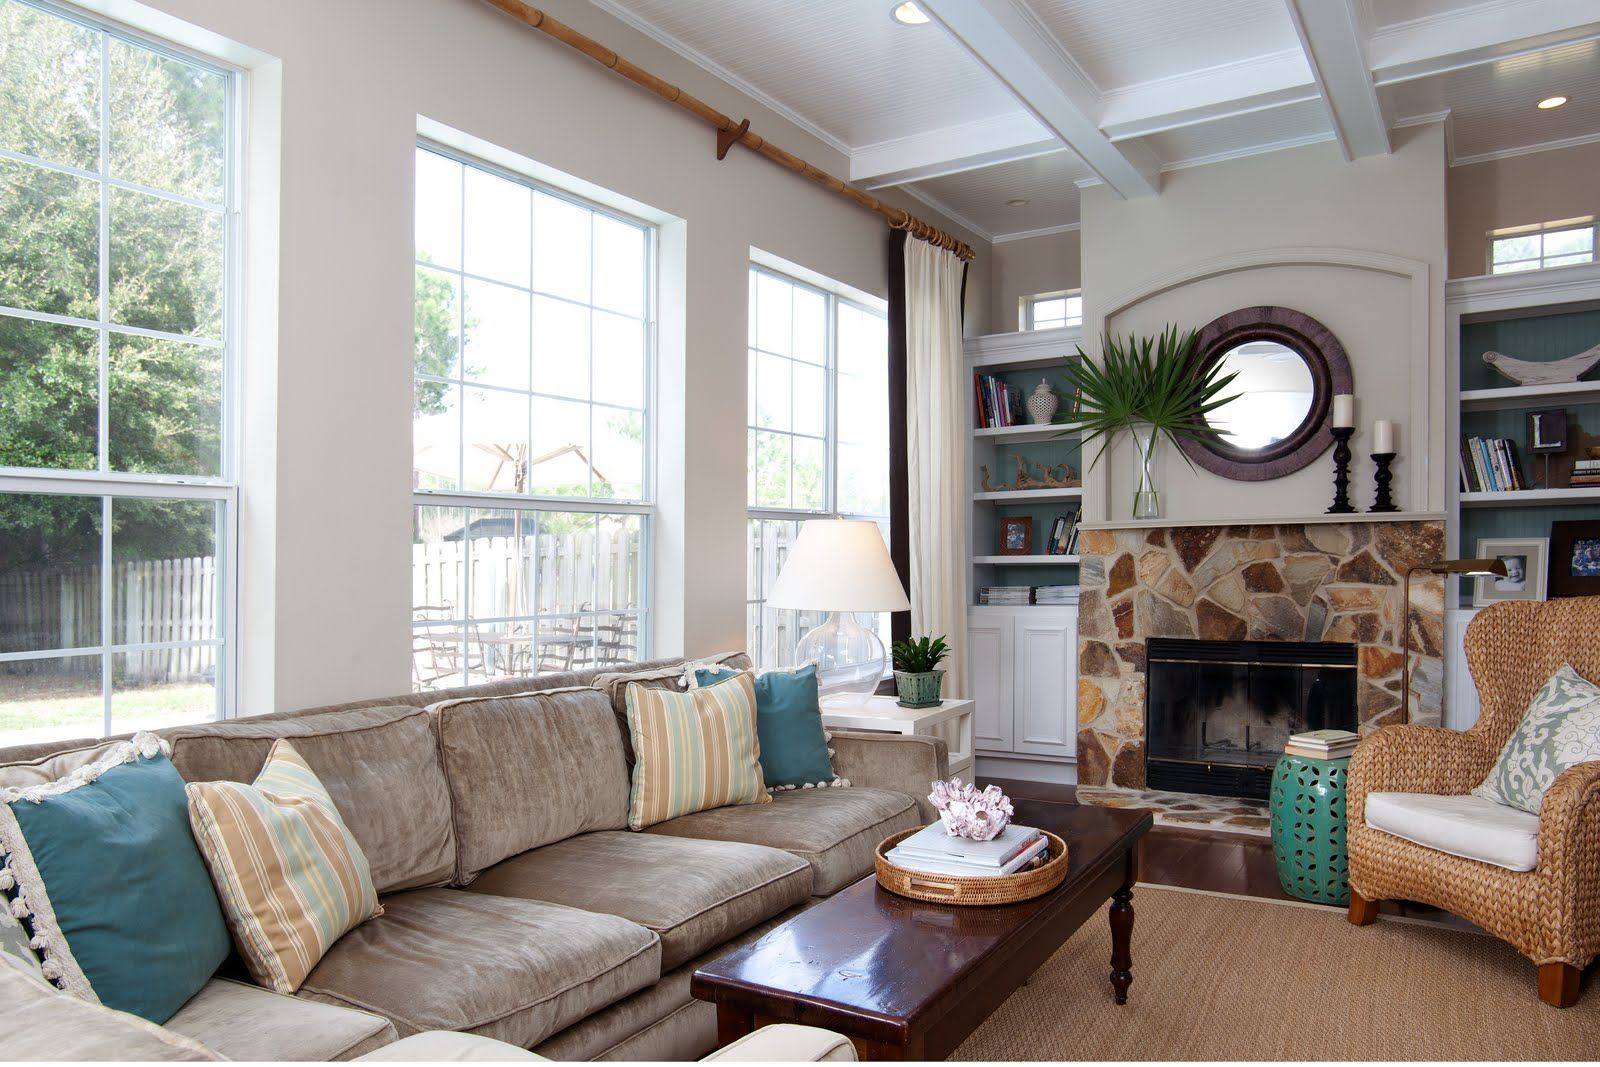 6th Street Design School : Feature Friday: The Cottage Mix | Living ...